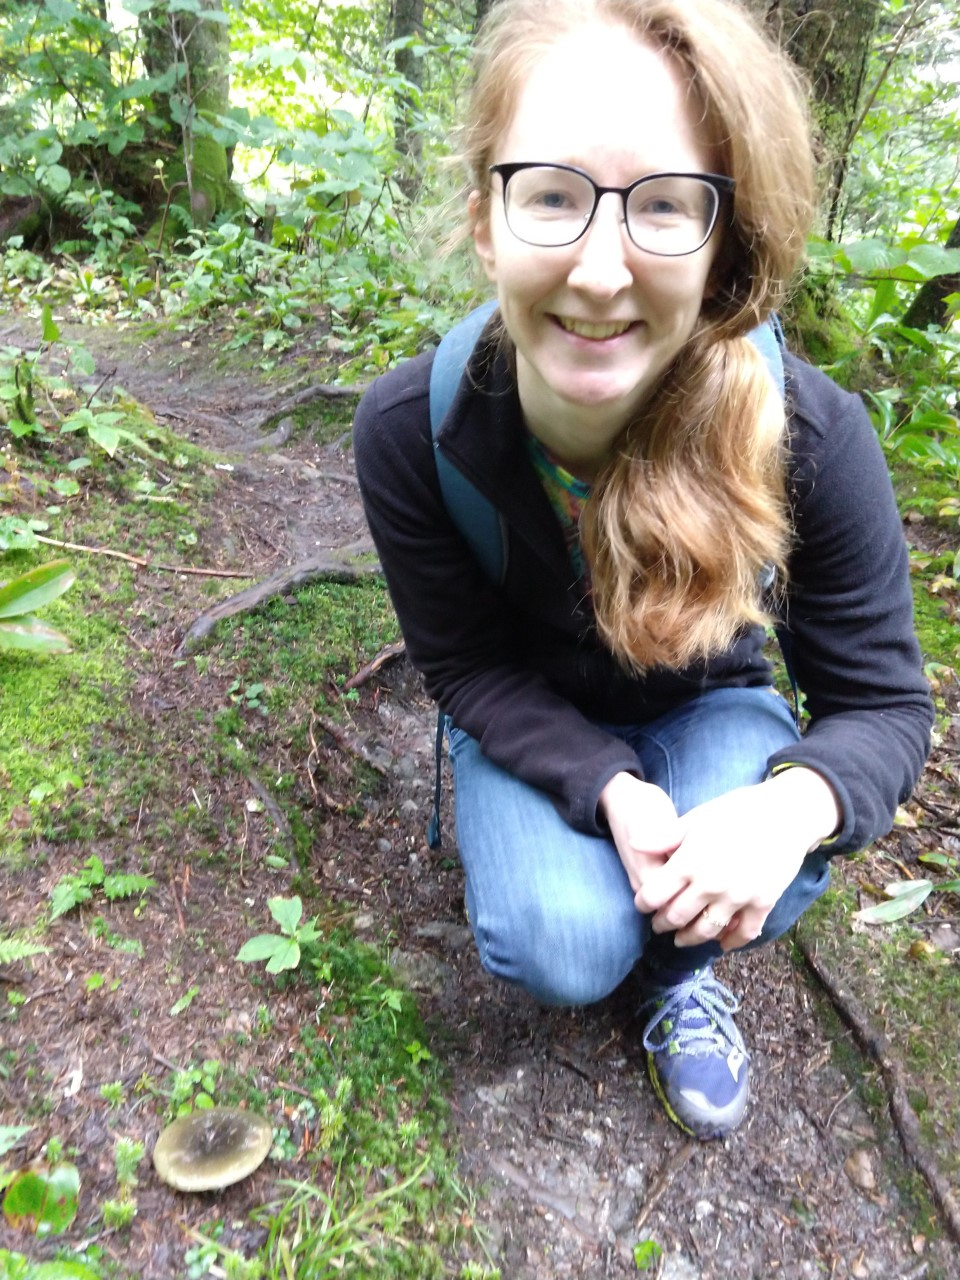 A person with glasses and a beard is crouching in the forest and smiling